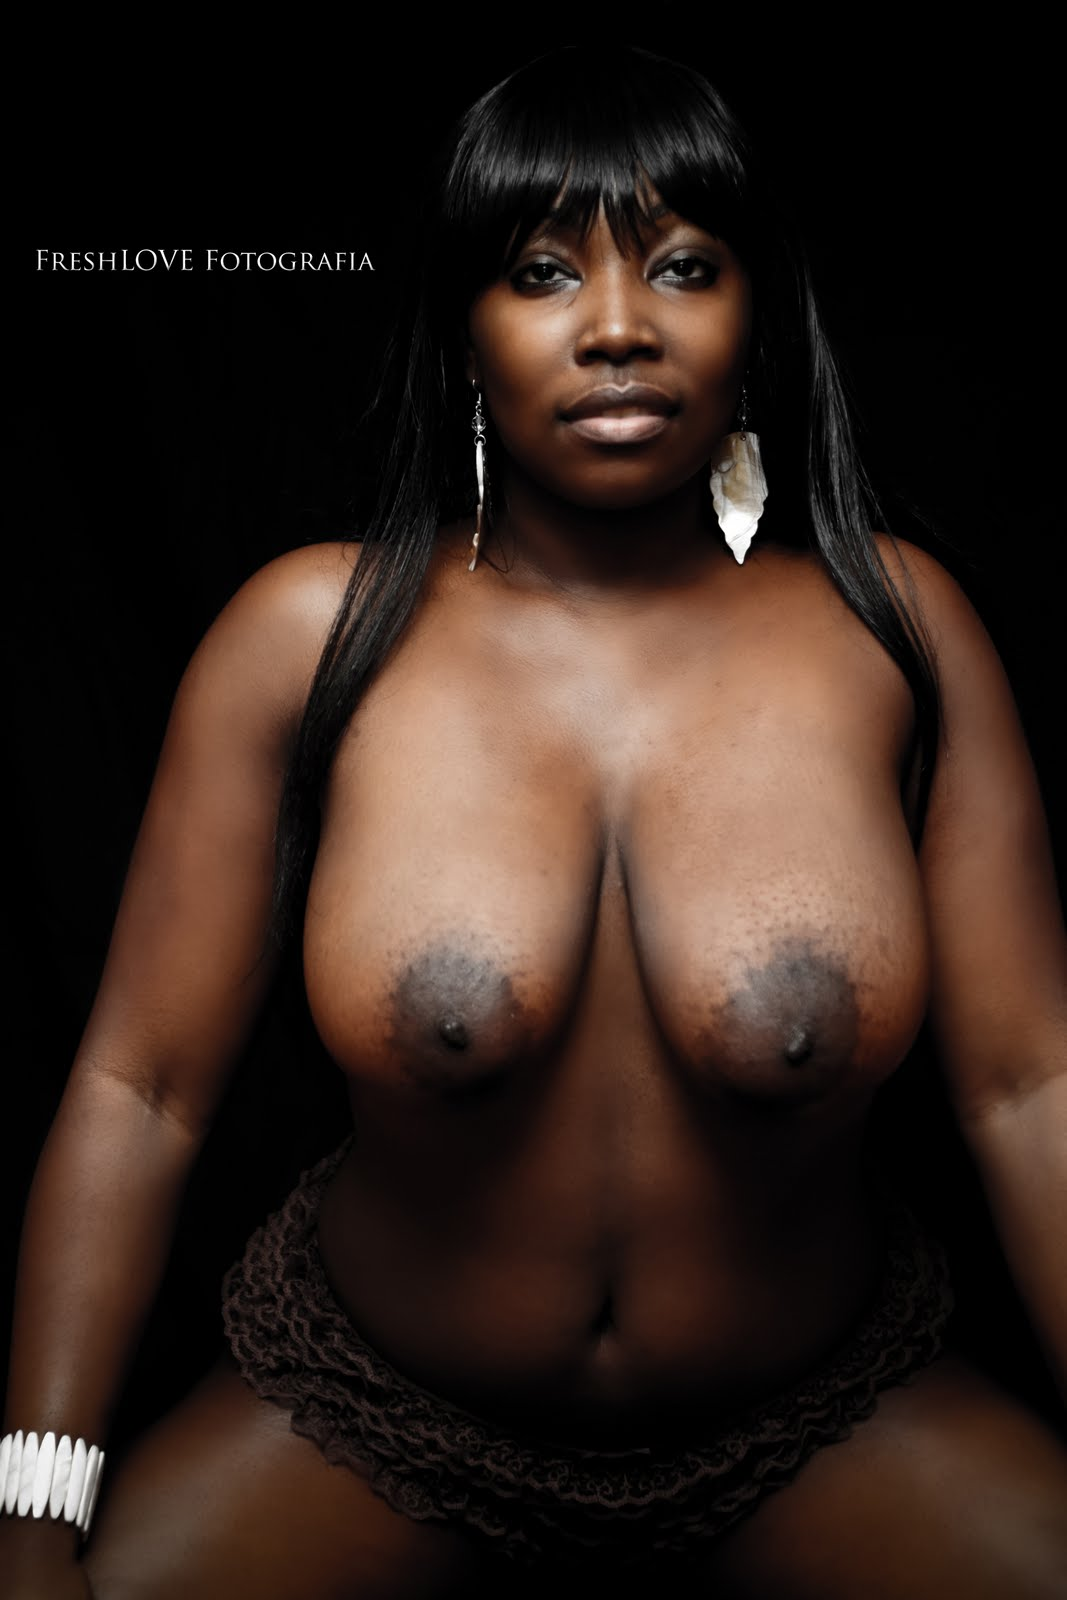 For Naked hot black female models